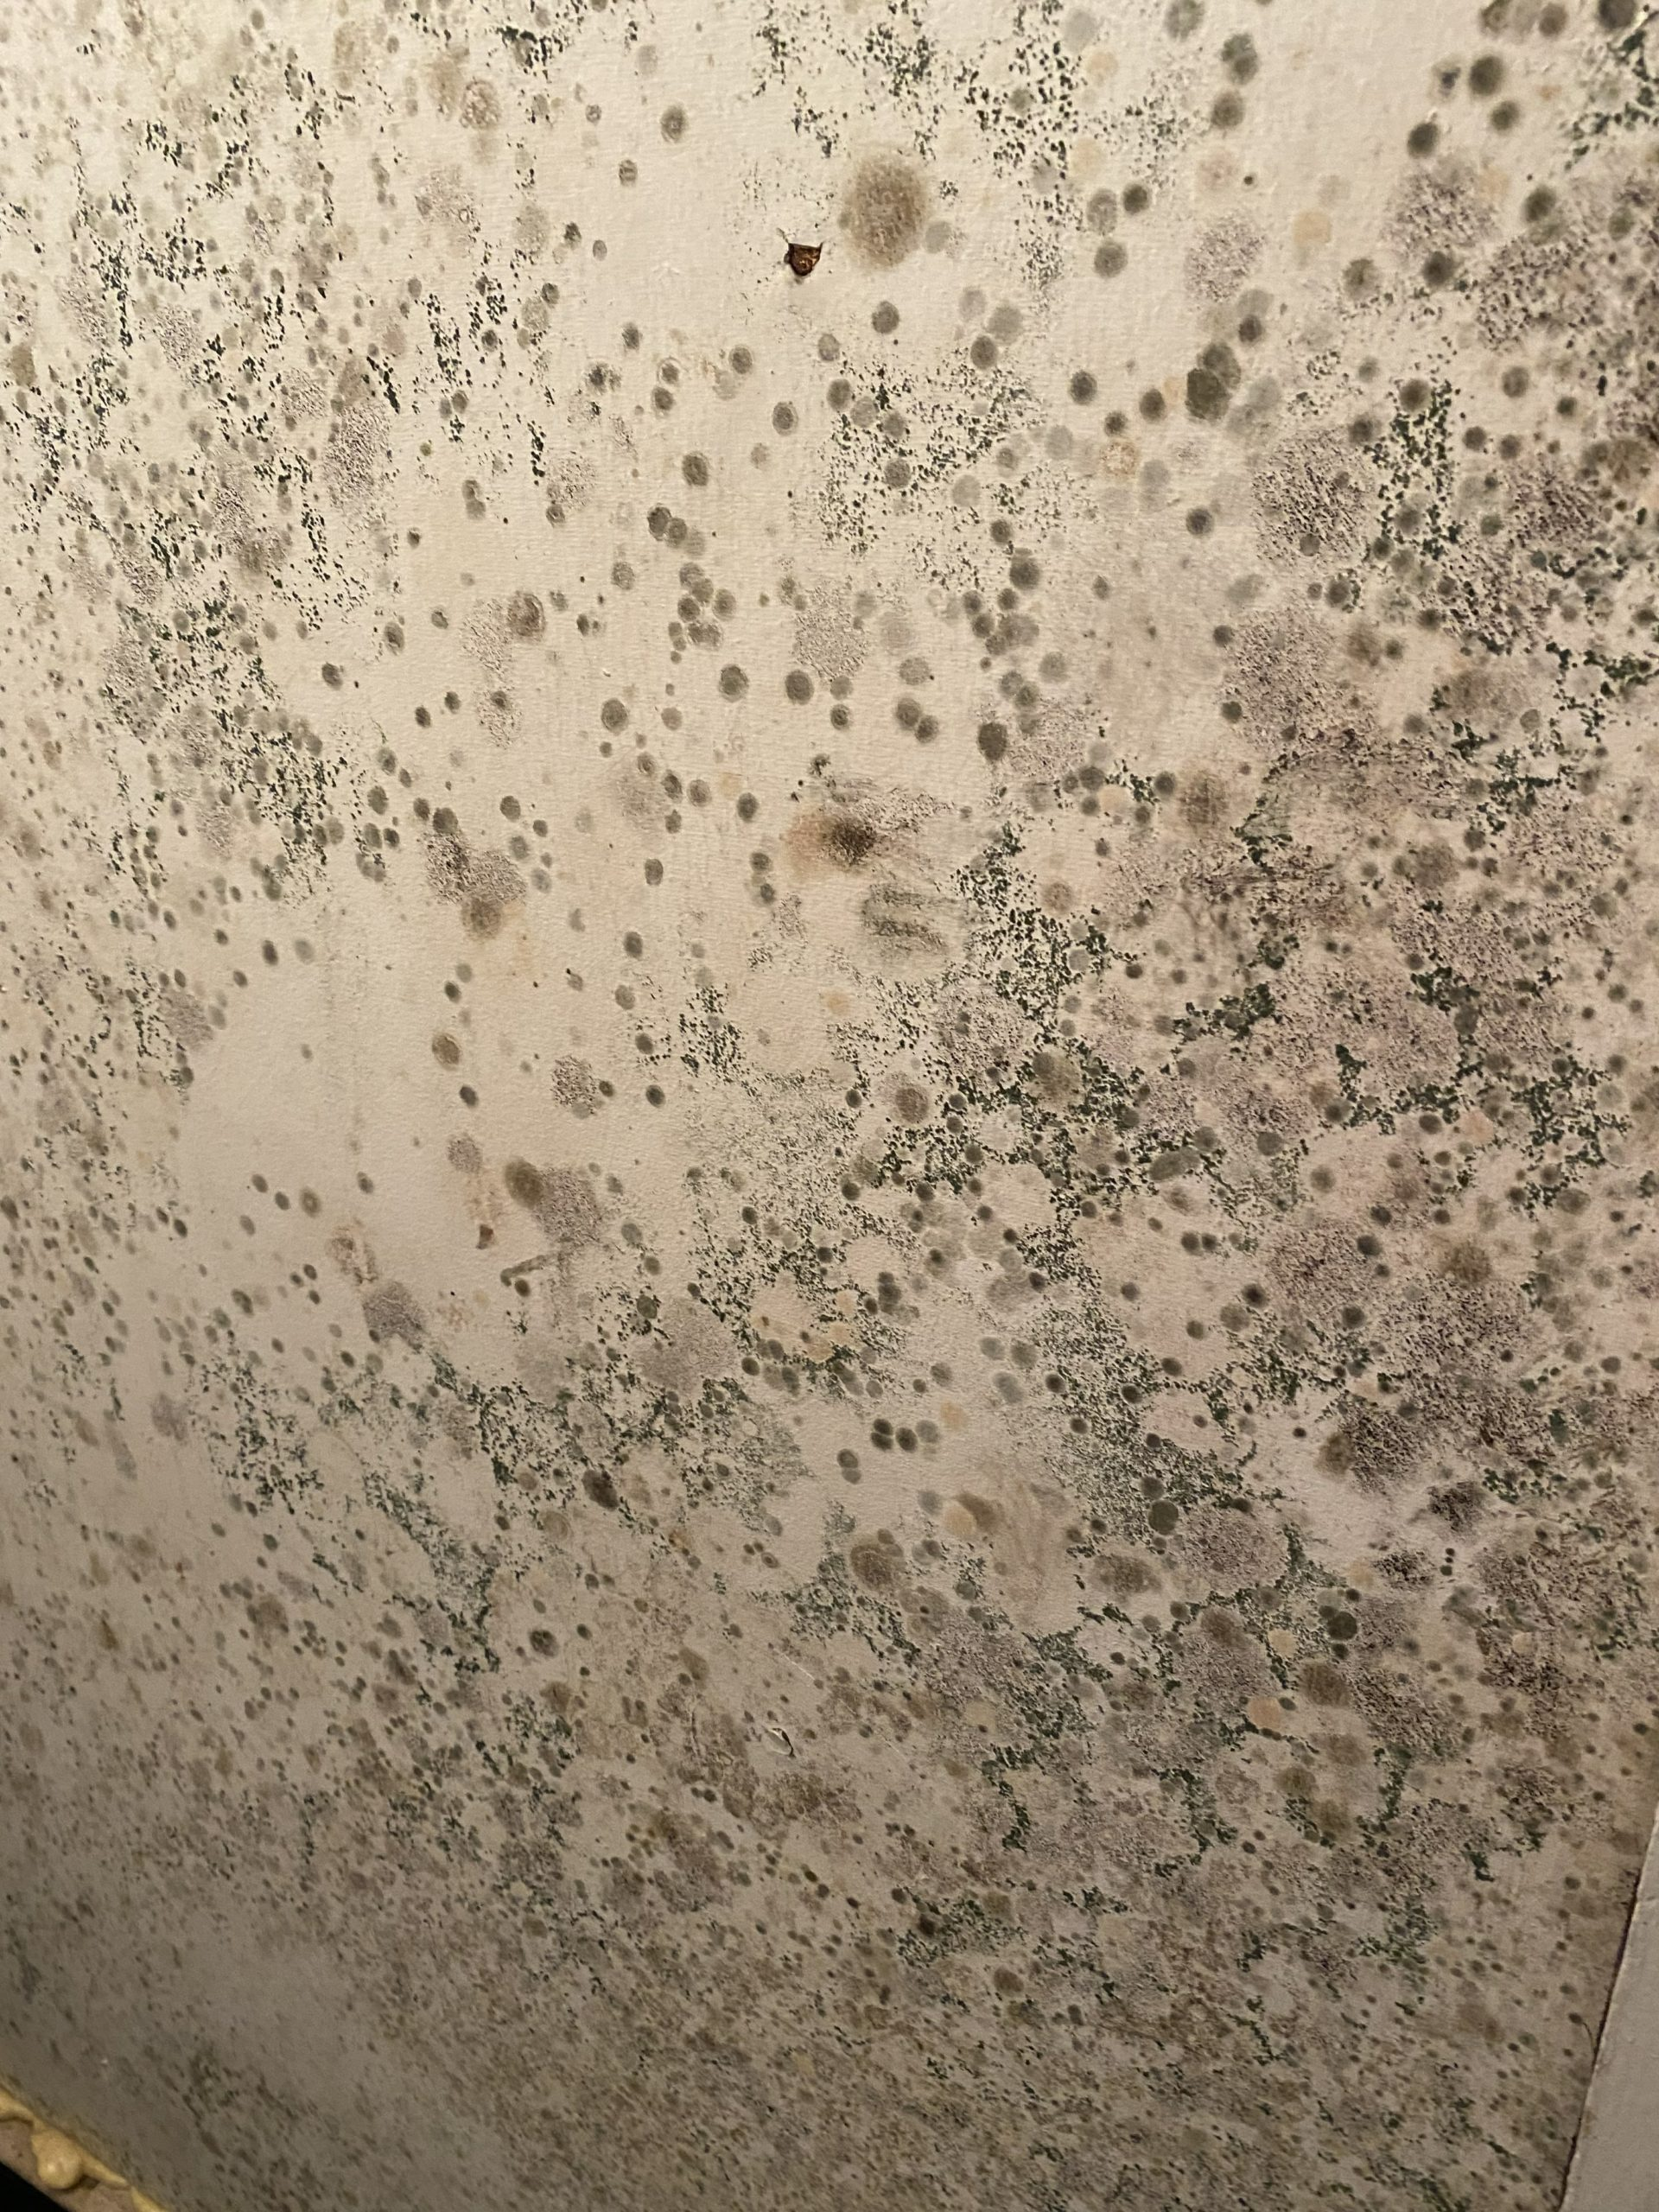 Mold can feed off anything that was once living, including drywall and even wood framing.